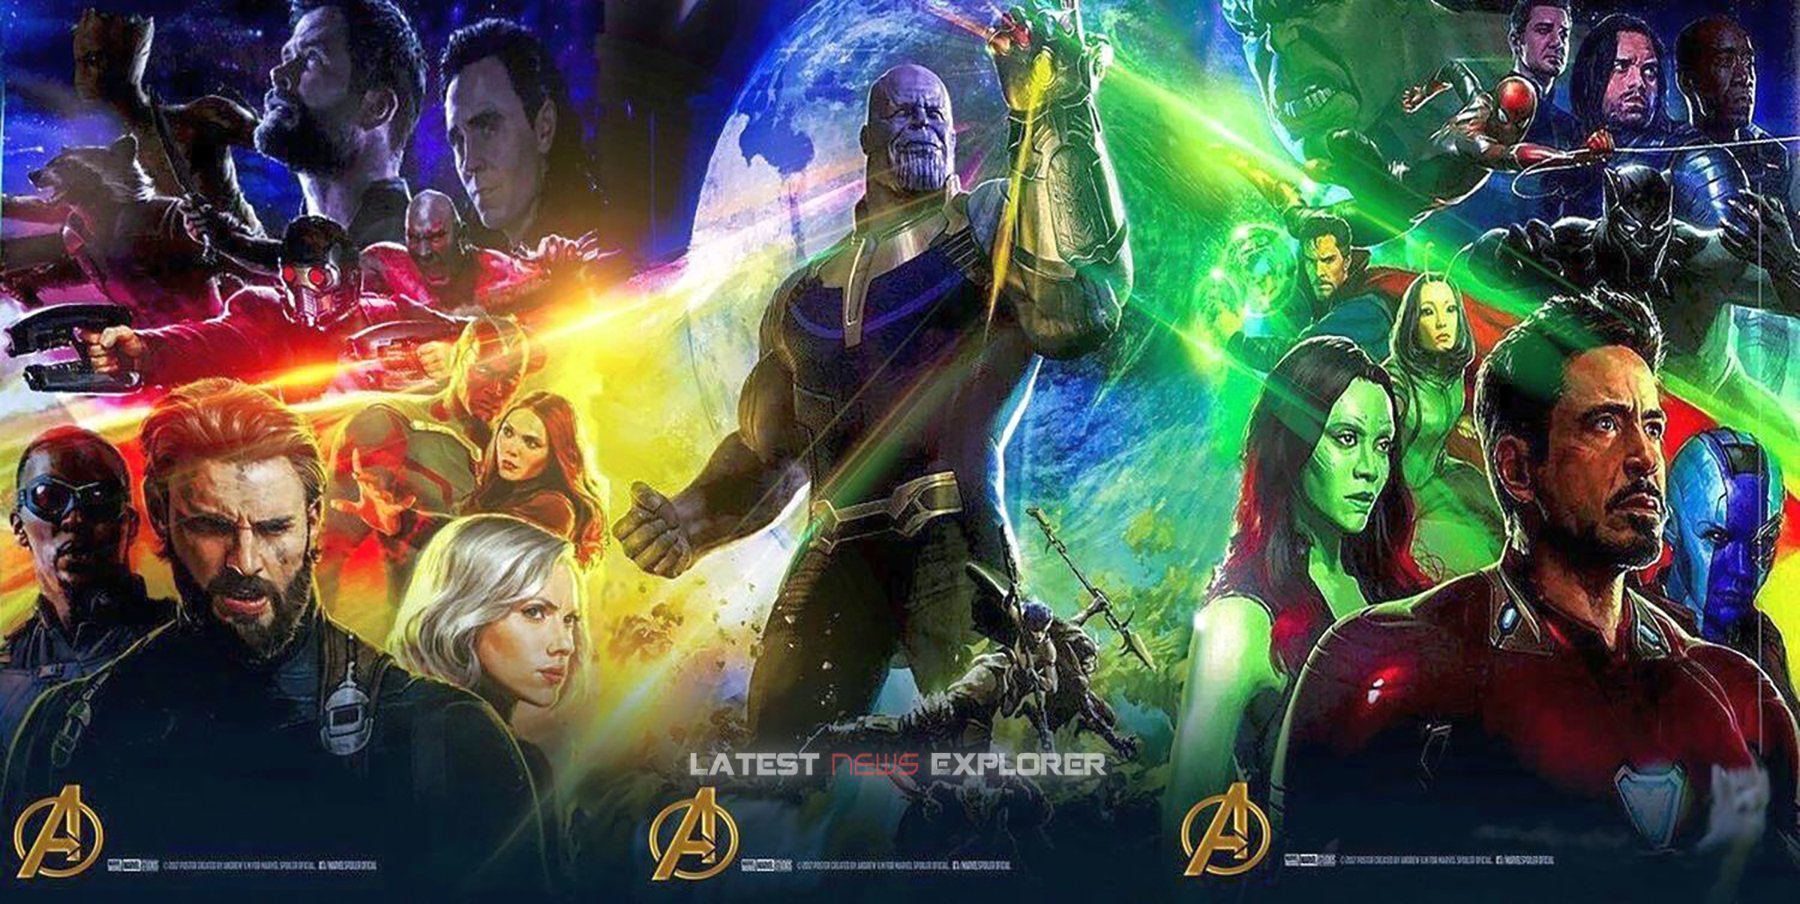 The Full Avengers: Infinity War Comic Con Poster Debuts